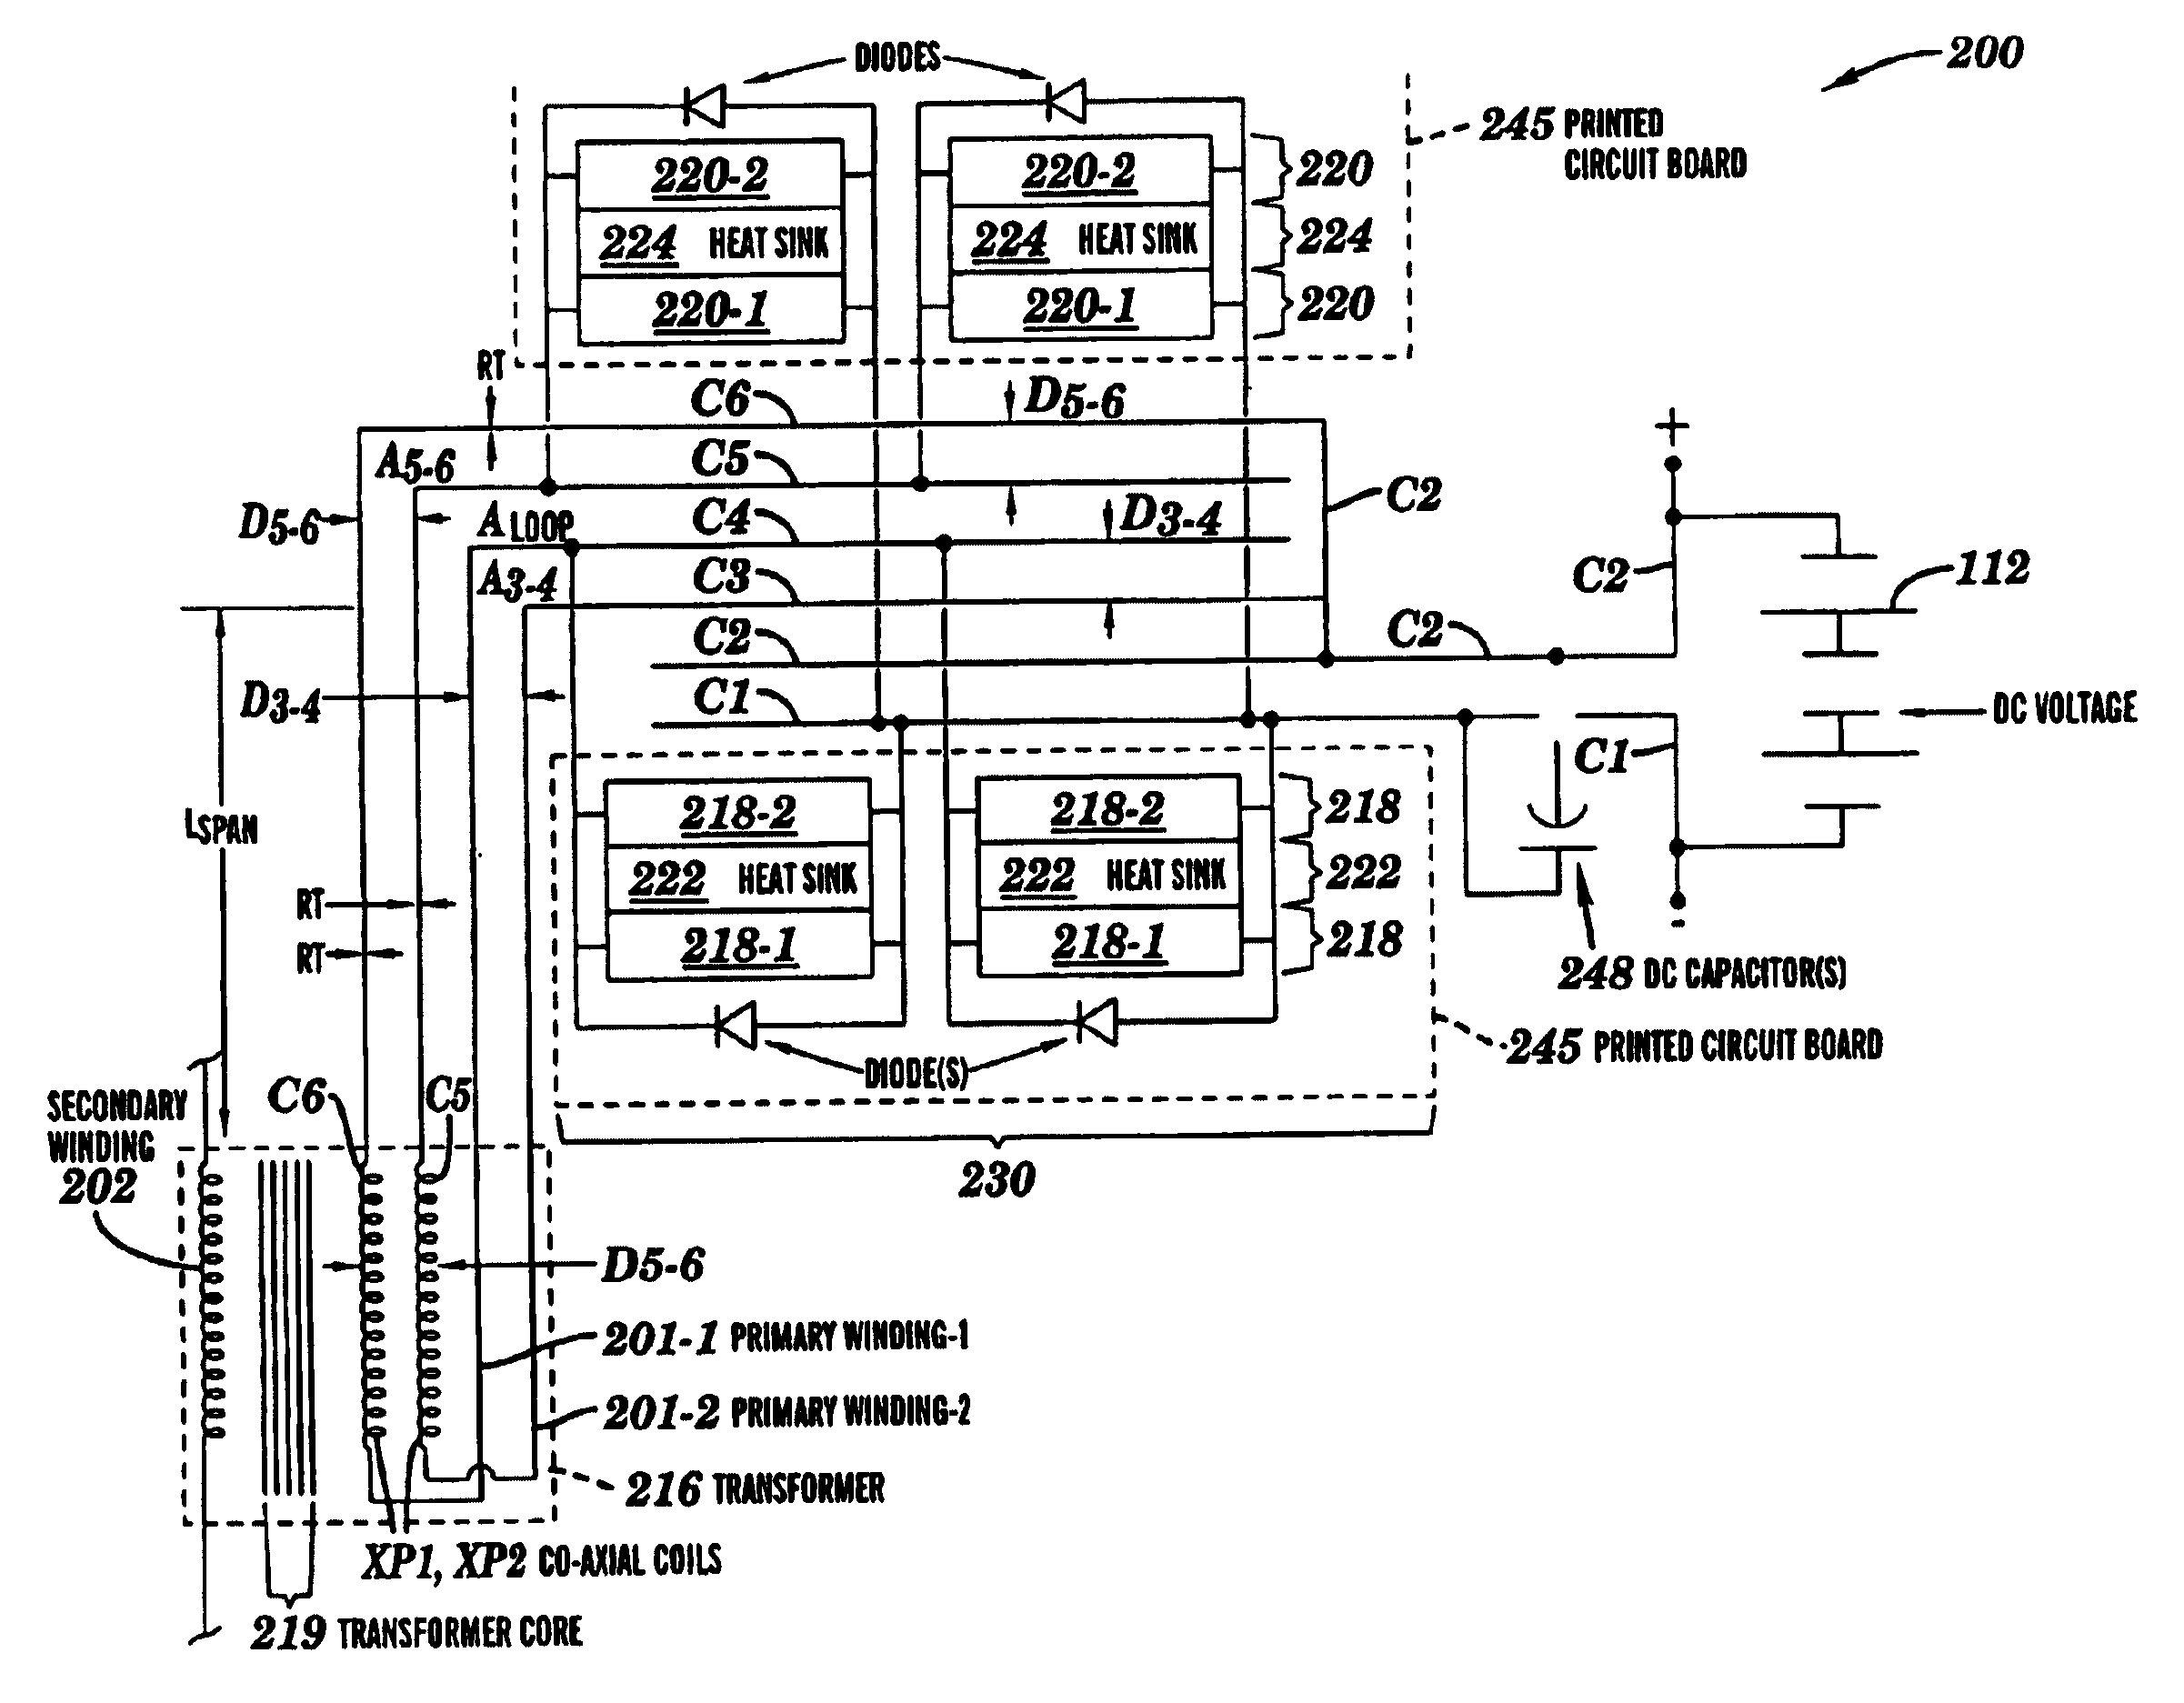 10000 W Inverter Circuit Diagram Manual Guide Wiring Images Gallery